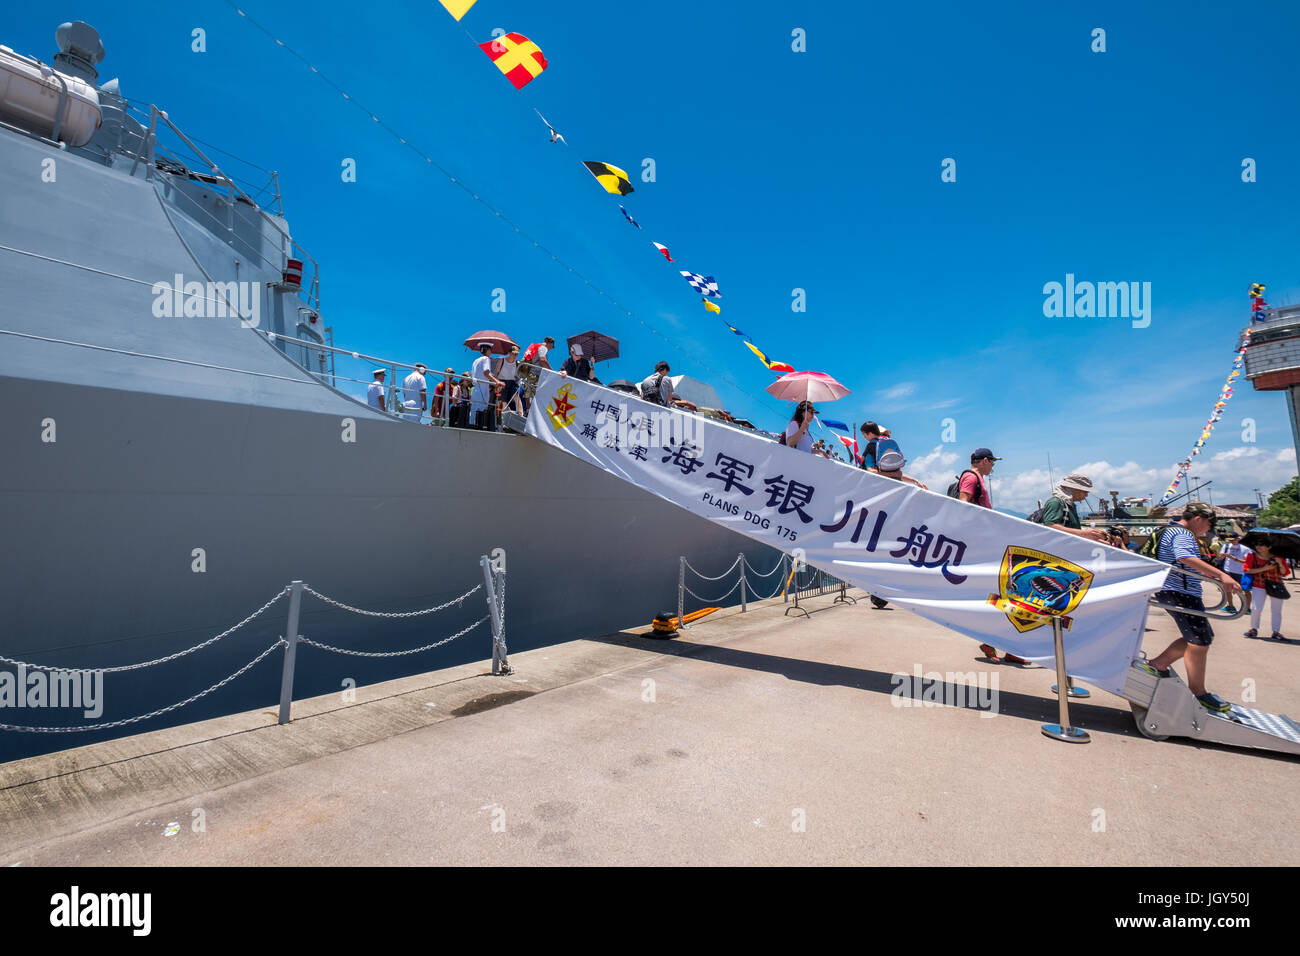 Ngong Shuen Chau Naval Base, Hong Kong  - June 9, 2017 : Yinchuan (number 175) missile destroyer visited Hong Kong and was opened to the public. Stock Photo